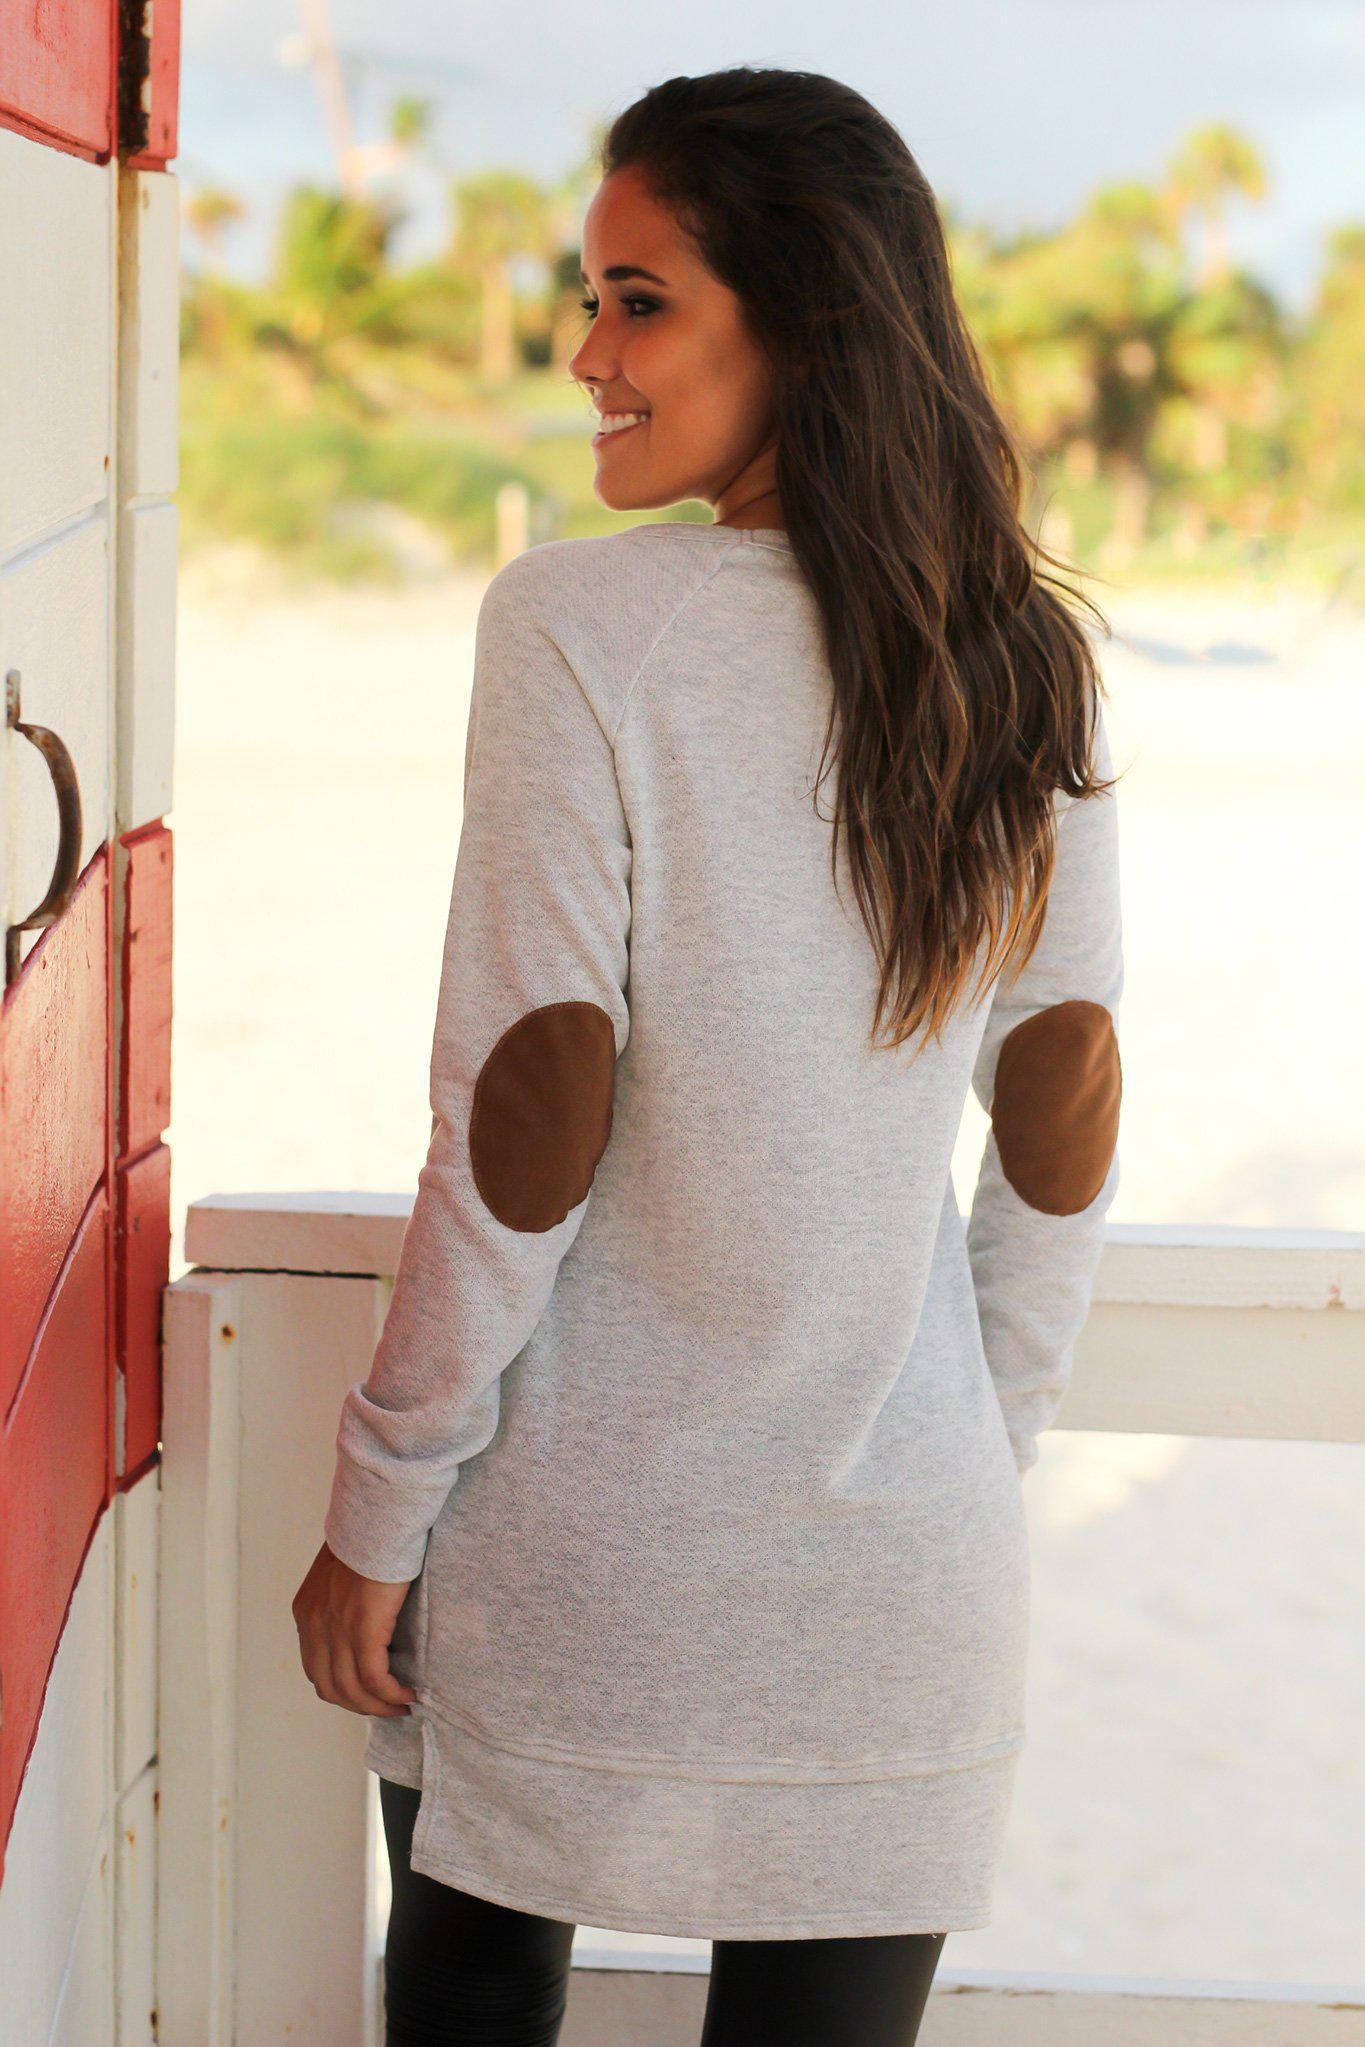 Heather Gray Tunic with Elbow Patches